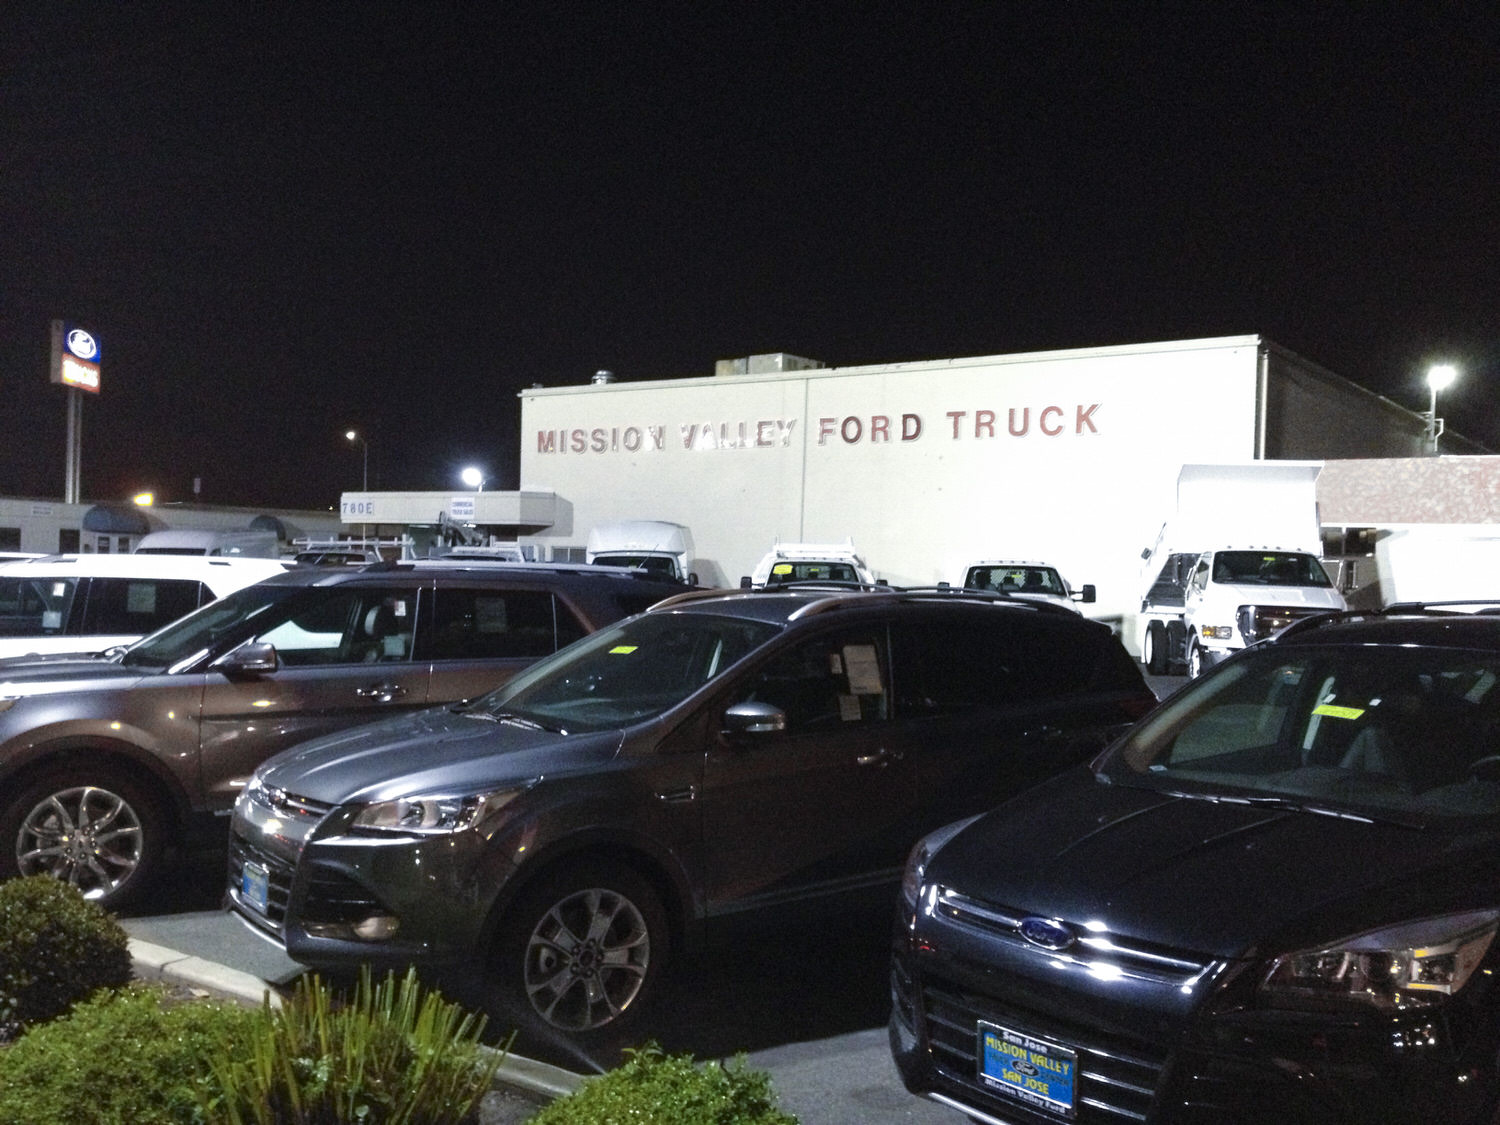 Mission Valley Ford-5.jpg